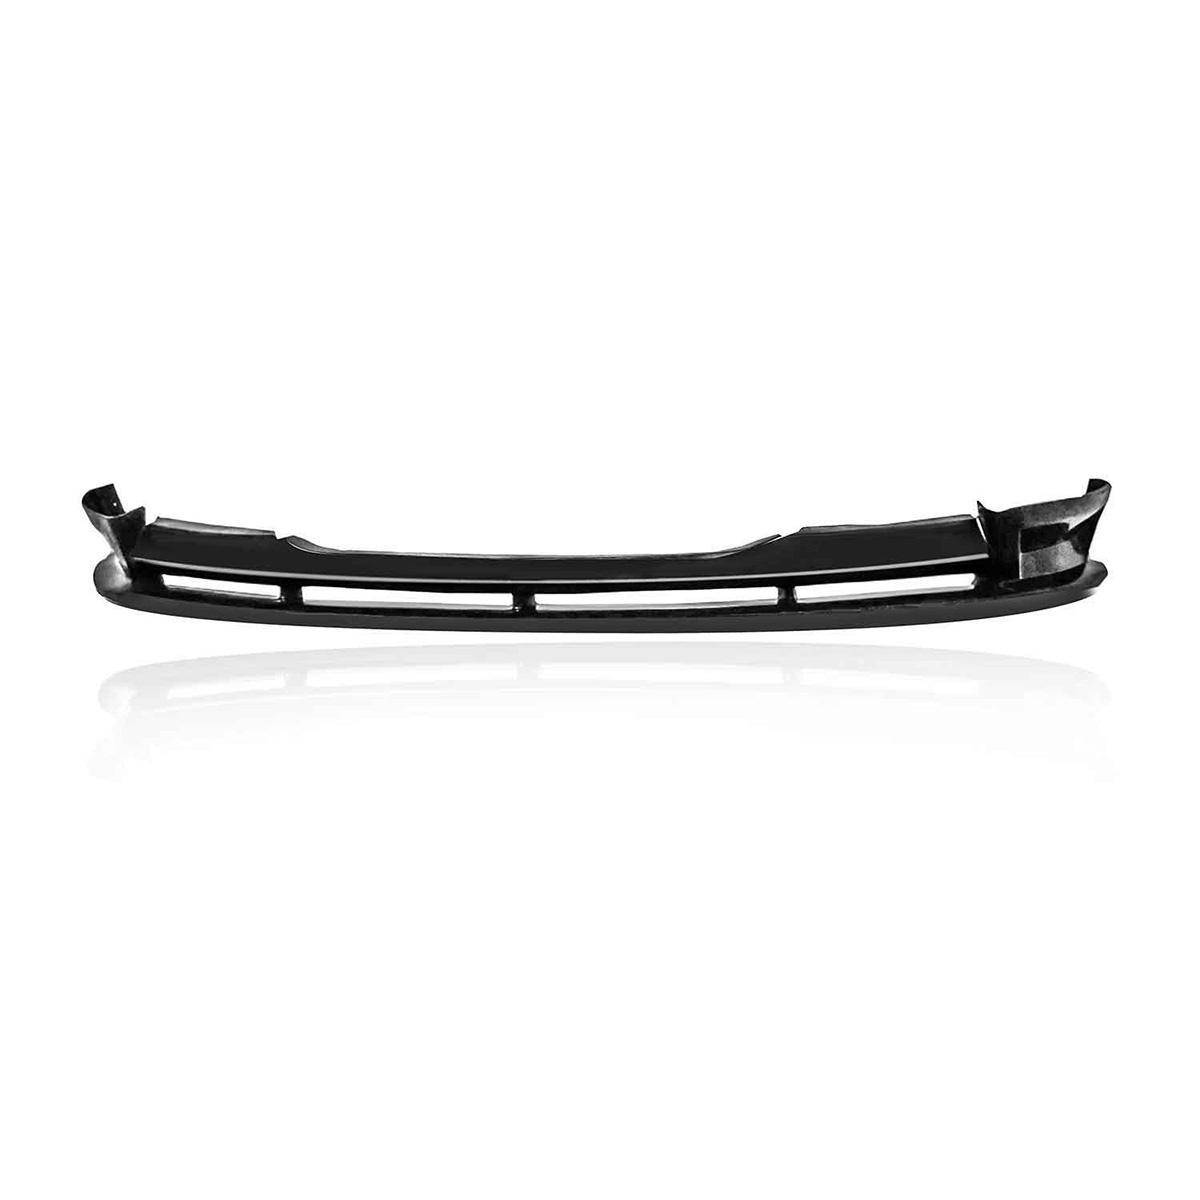 Ford Mustang 2010-2012 Premier Style 1 Piece Polyurethane Front Valence